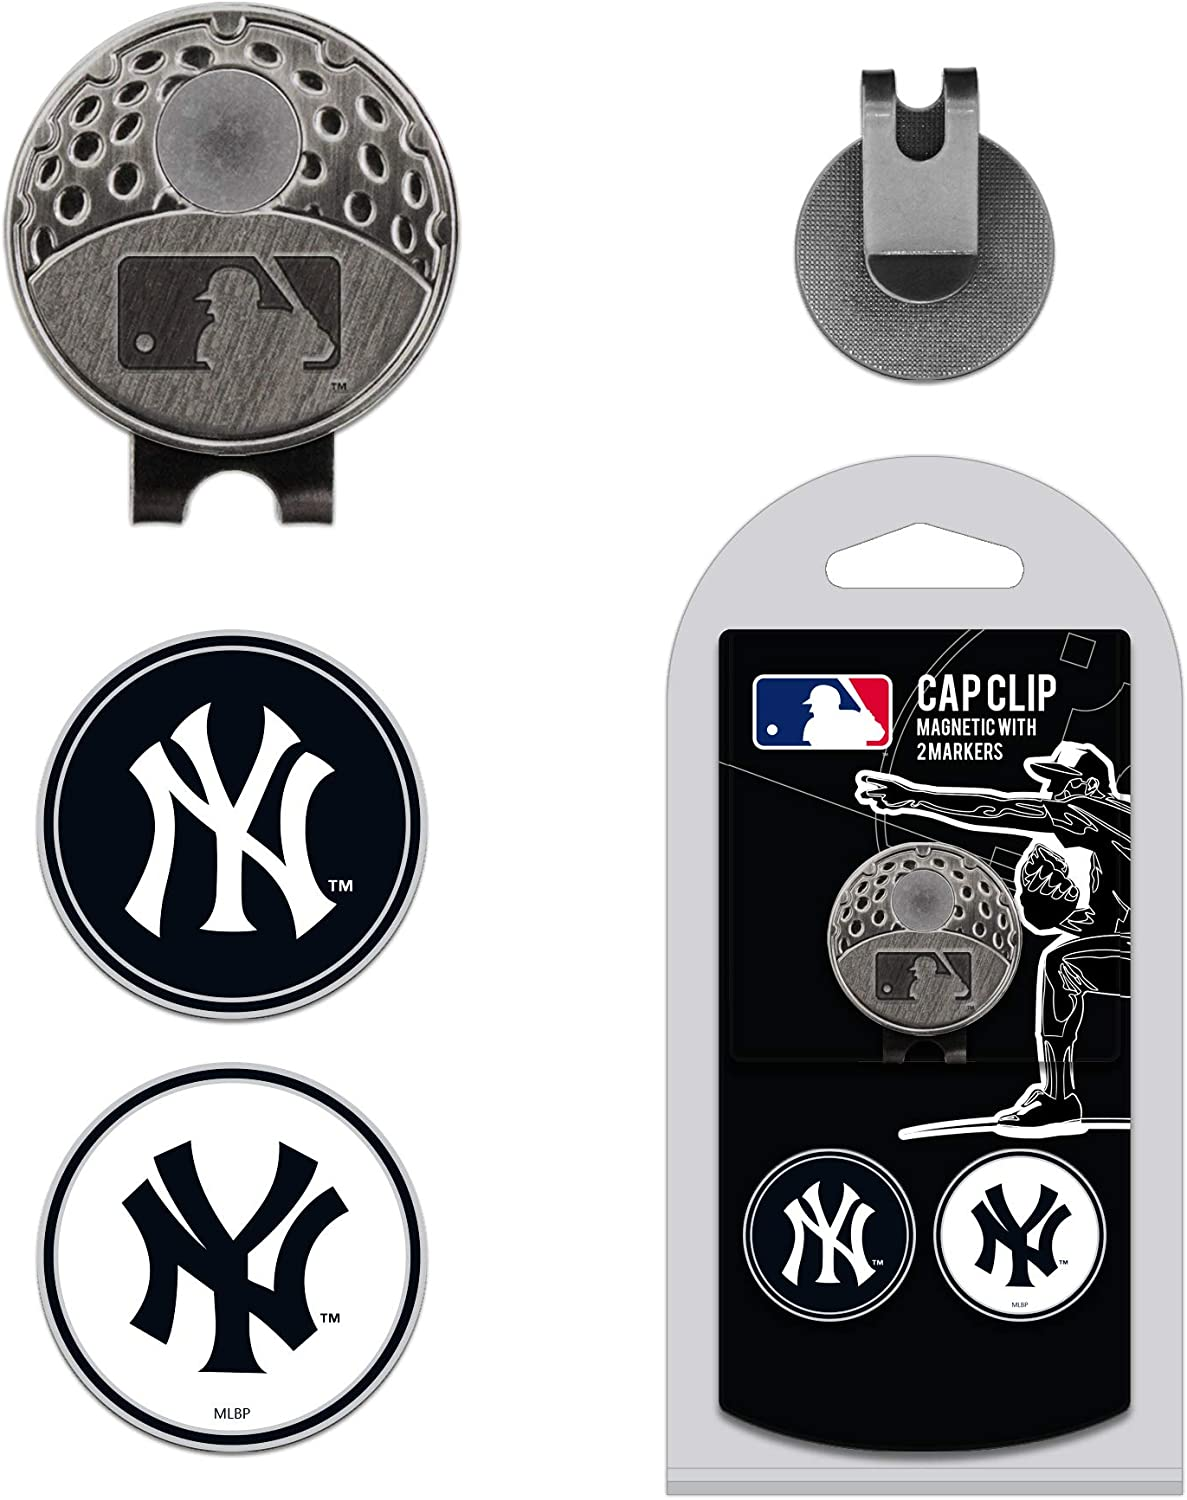 Team Golf MLB Golf Cap Clip with 2 Removable Double-Sided Enamel Magnetic Ball Markers, Attaches Easily to Hats